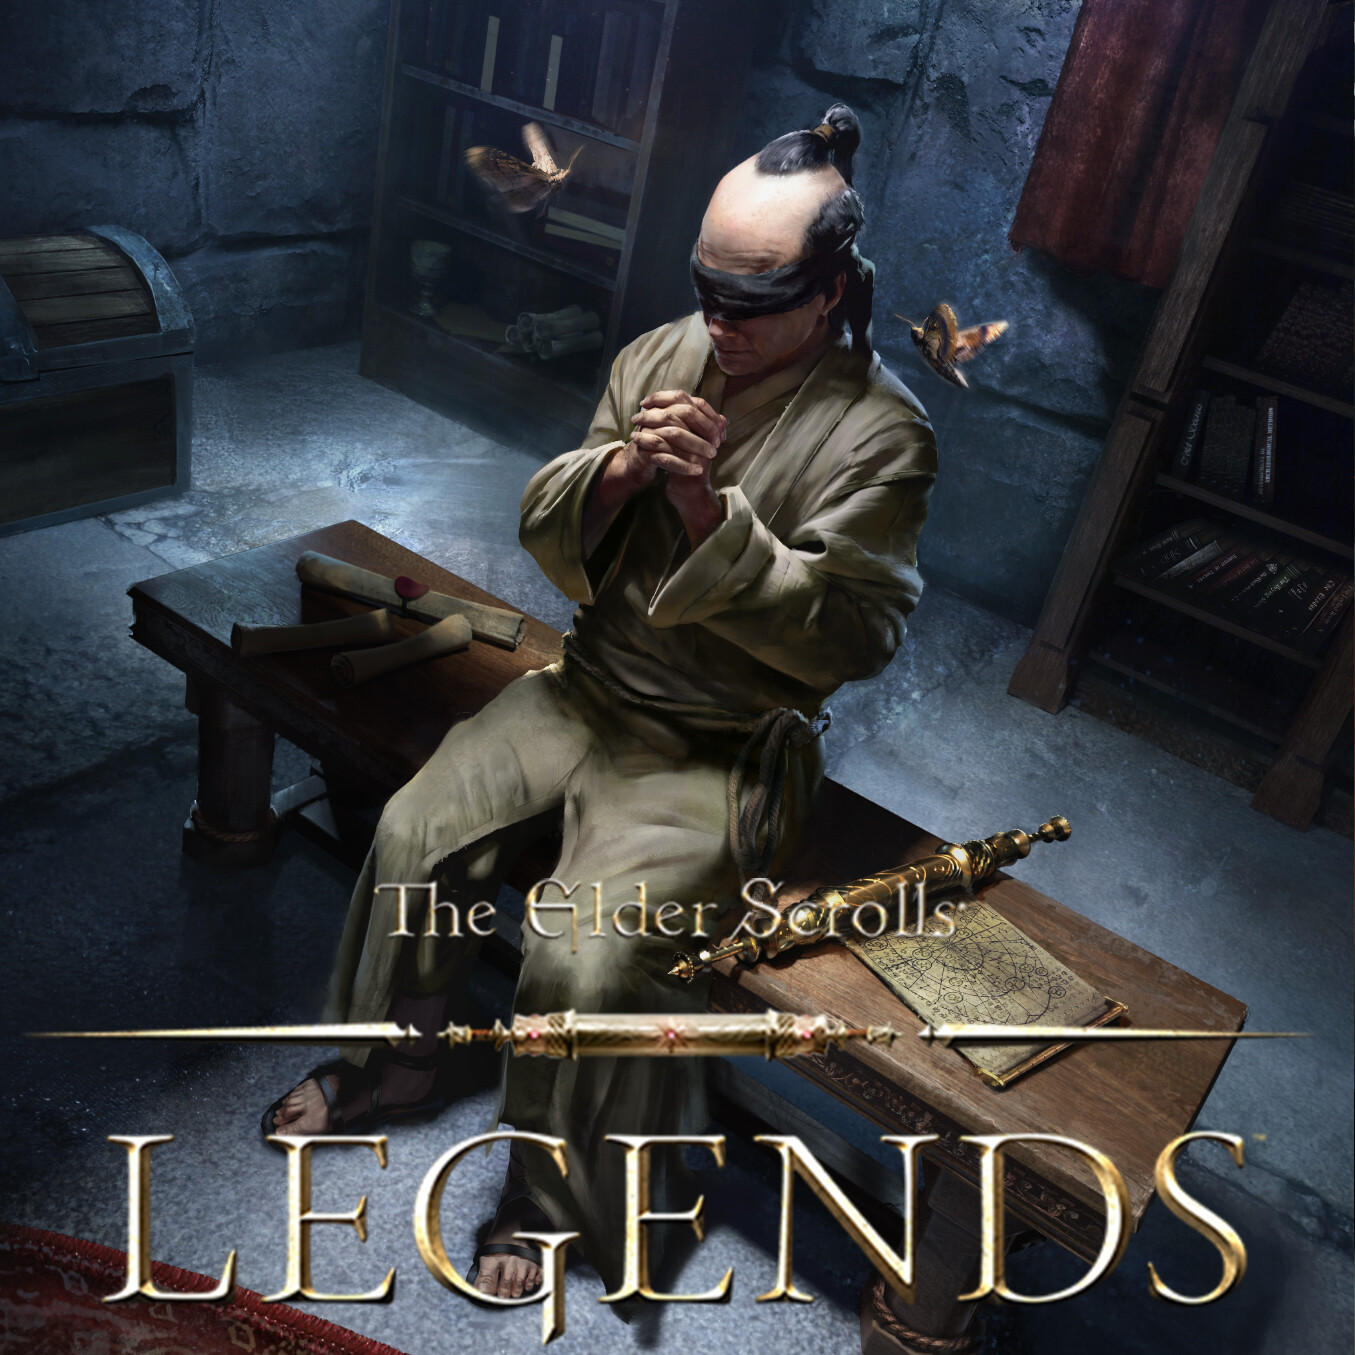 Blind Moth Priest - The Elder Scrolls: Legends